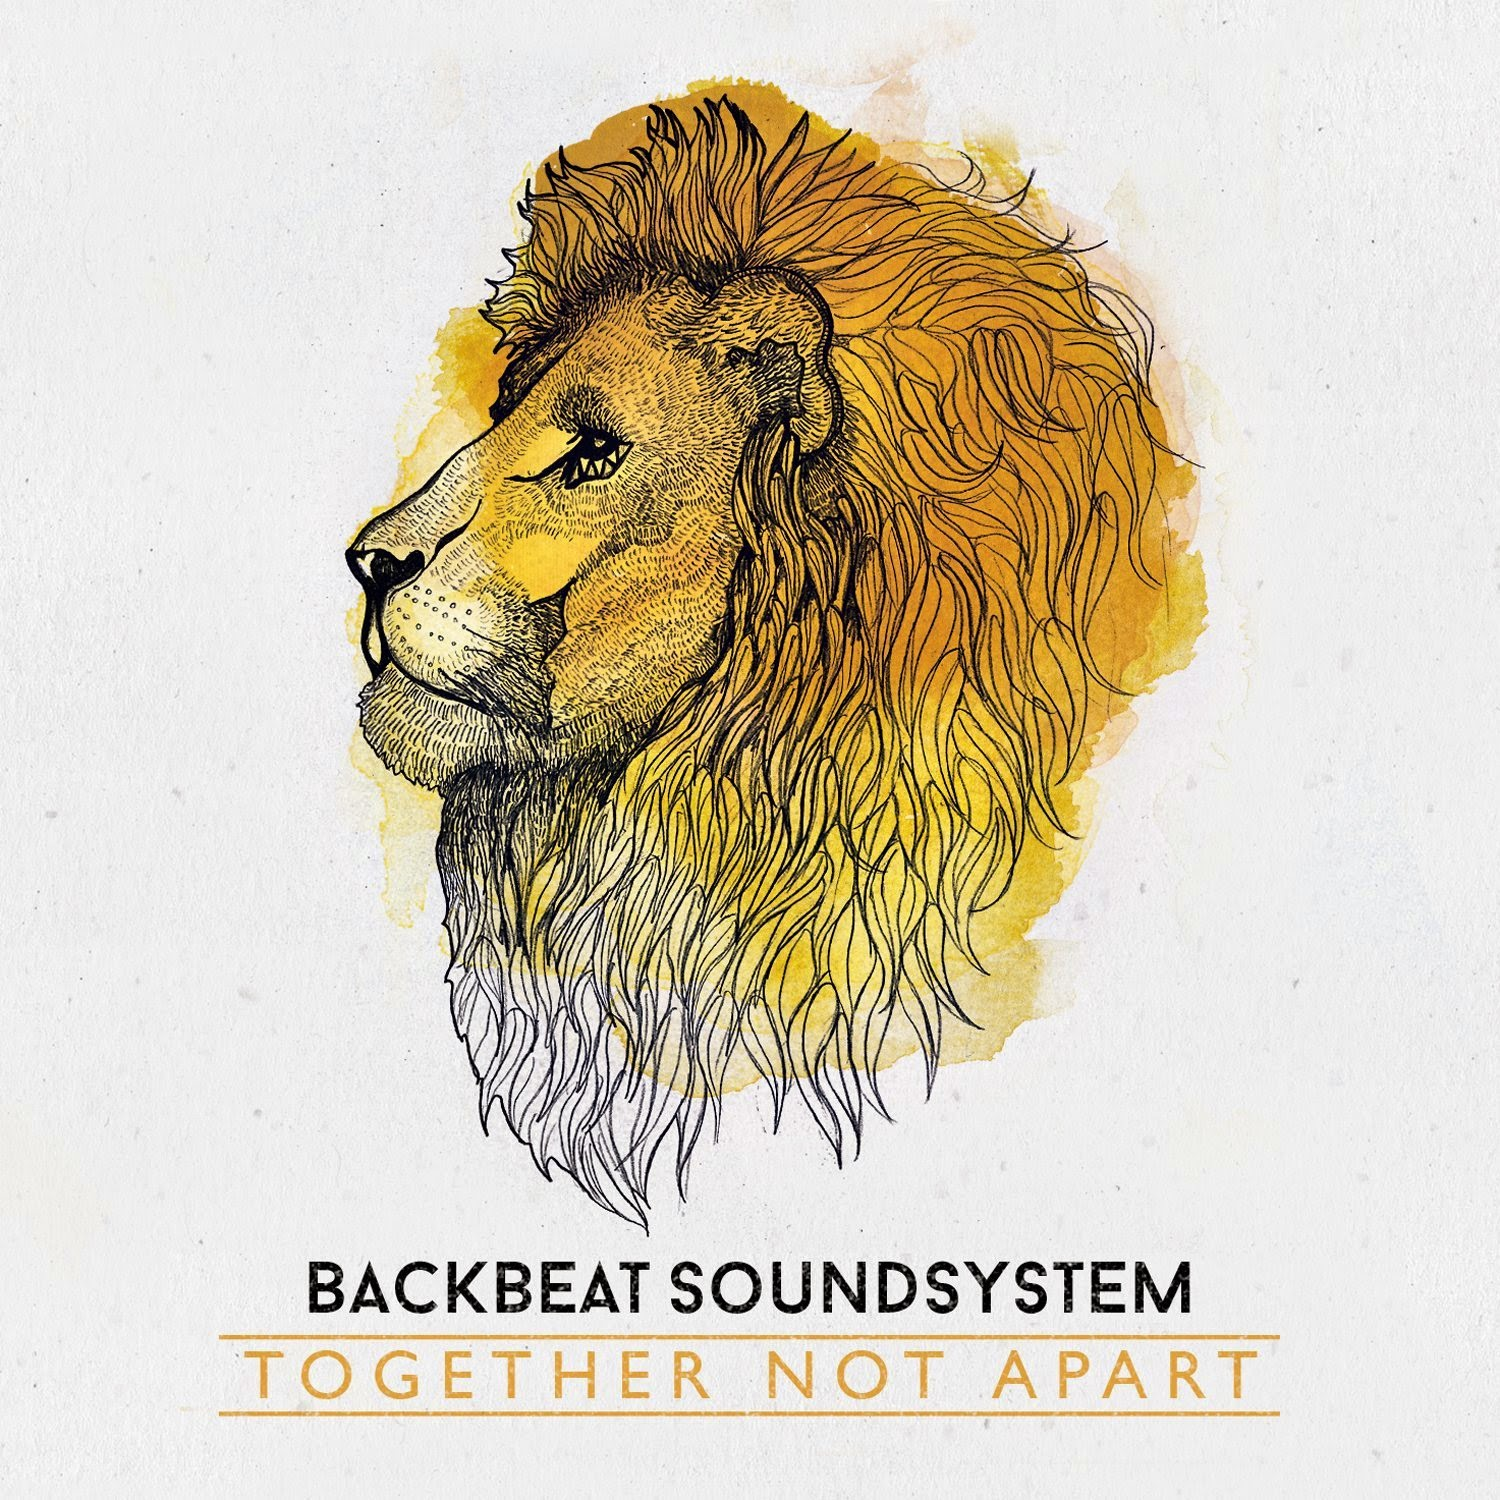 http://www.d4am.net/2014/10/backbeat-soundsystem-together-not-apart.html